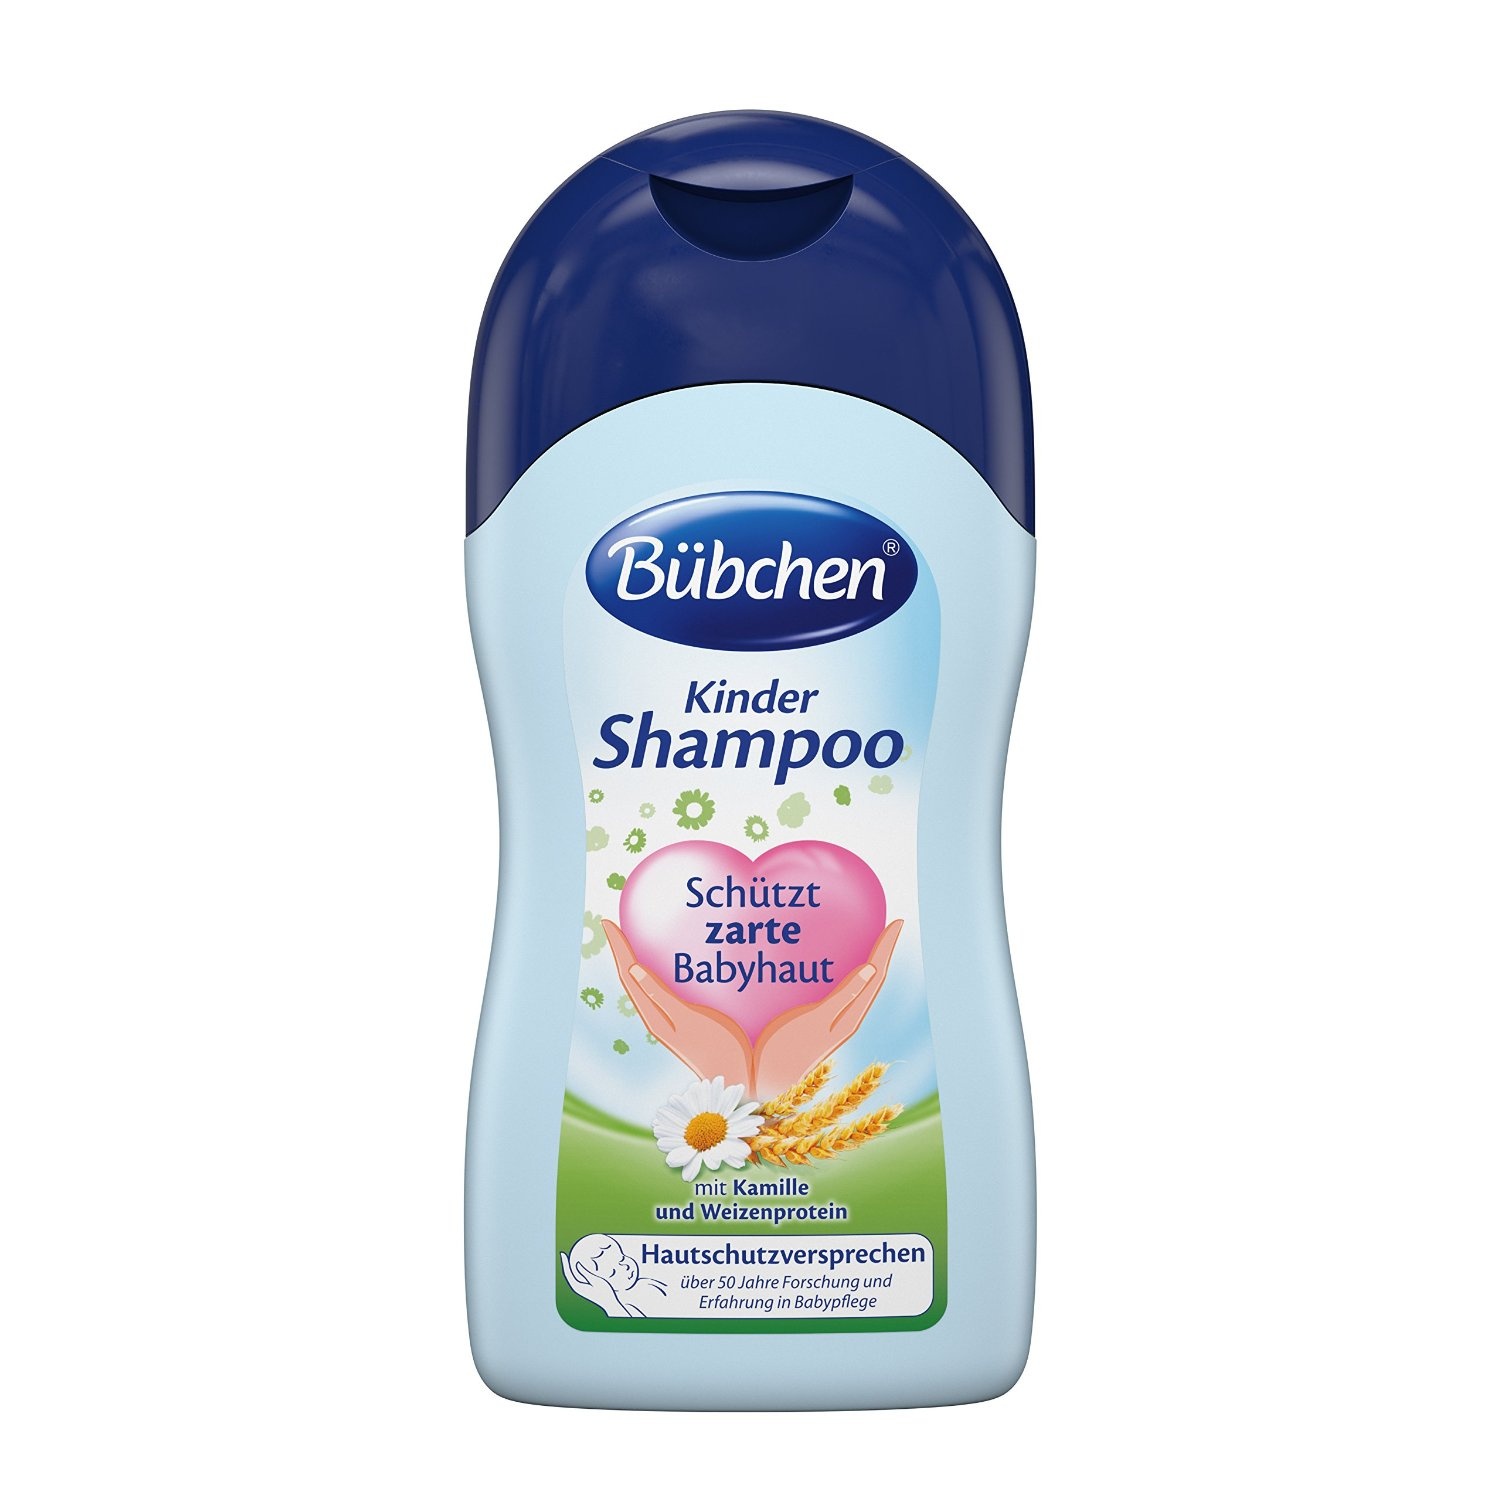 Kinder Shampoo (400ml)